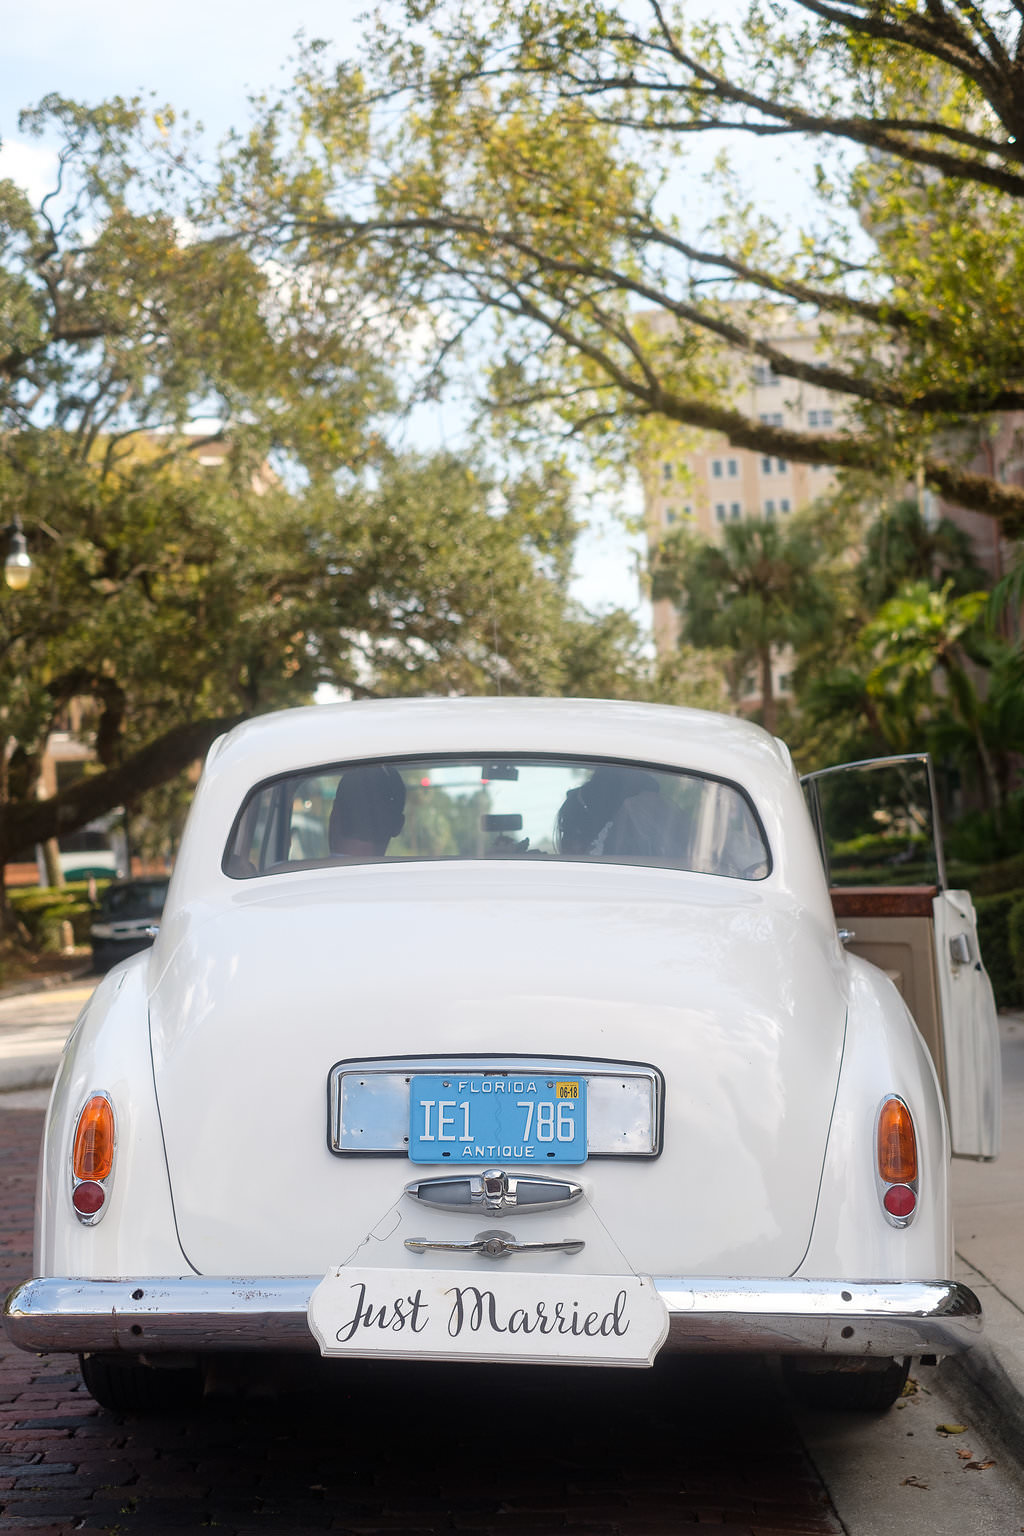 Outdoor Wedding Portrait in Vintage Rolls Royce Car with Hand Painted Black Just Married White Painted Wooden Sign | Tampa Bay Wedding Photographer Marc Edwards Photographs